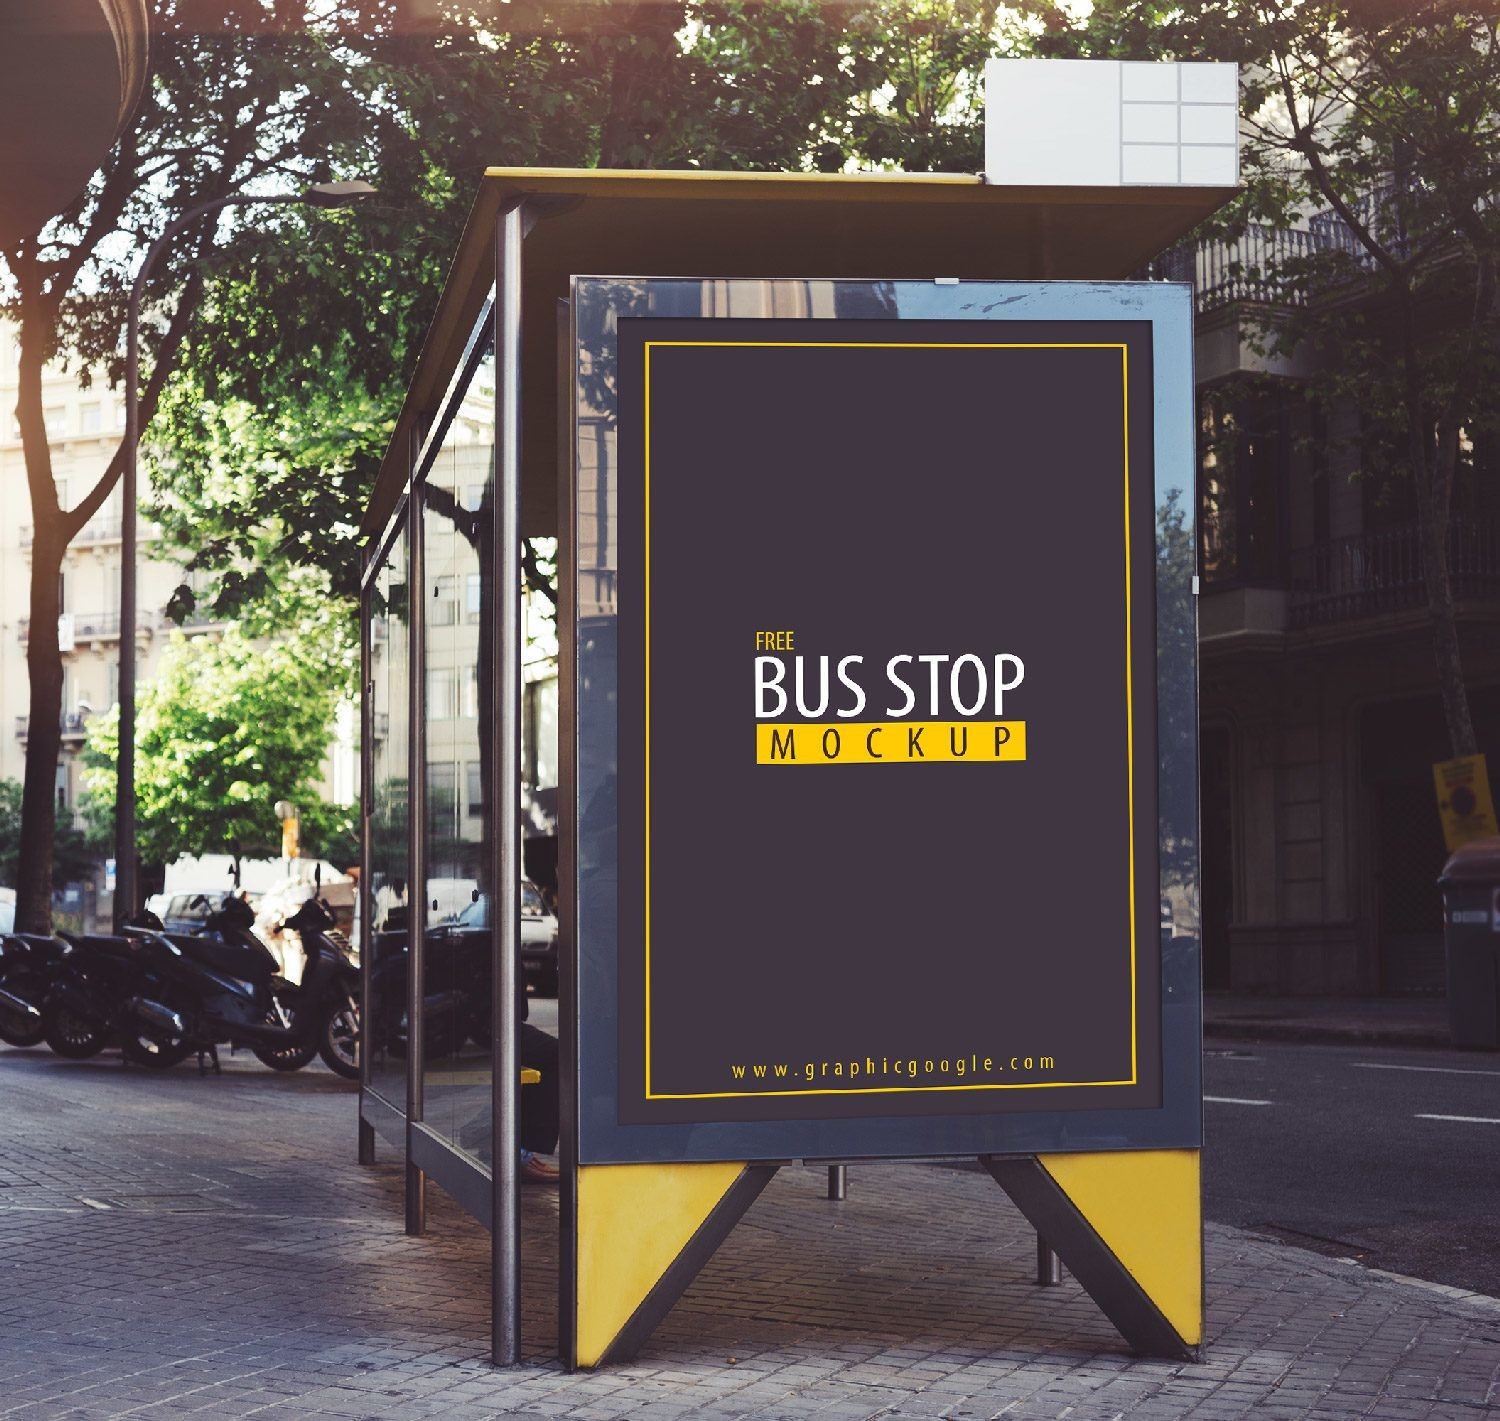 Calendario 2019 Chile Imprimir Recientes Free Bus Stop Mockup Mockup Pinterest Of Calendario 2019 Chile Imprimir Más Recientemente Liberado Observar Calendario Para Imprimir 2019 Pdf